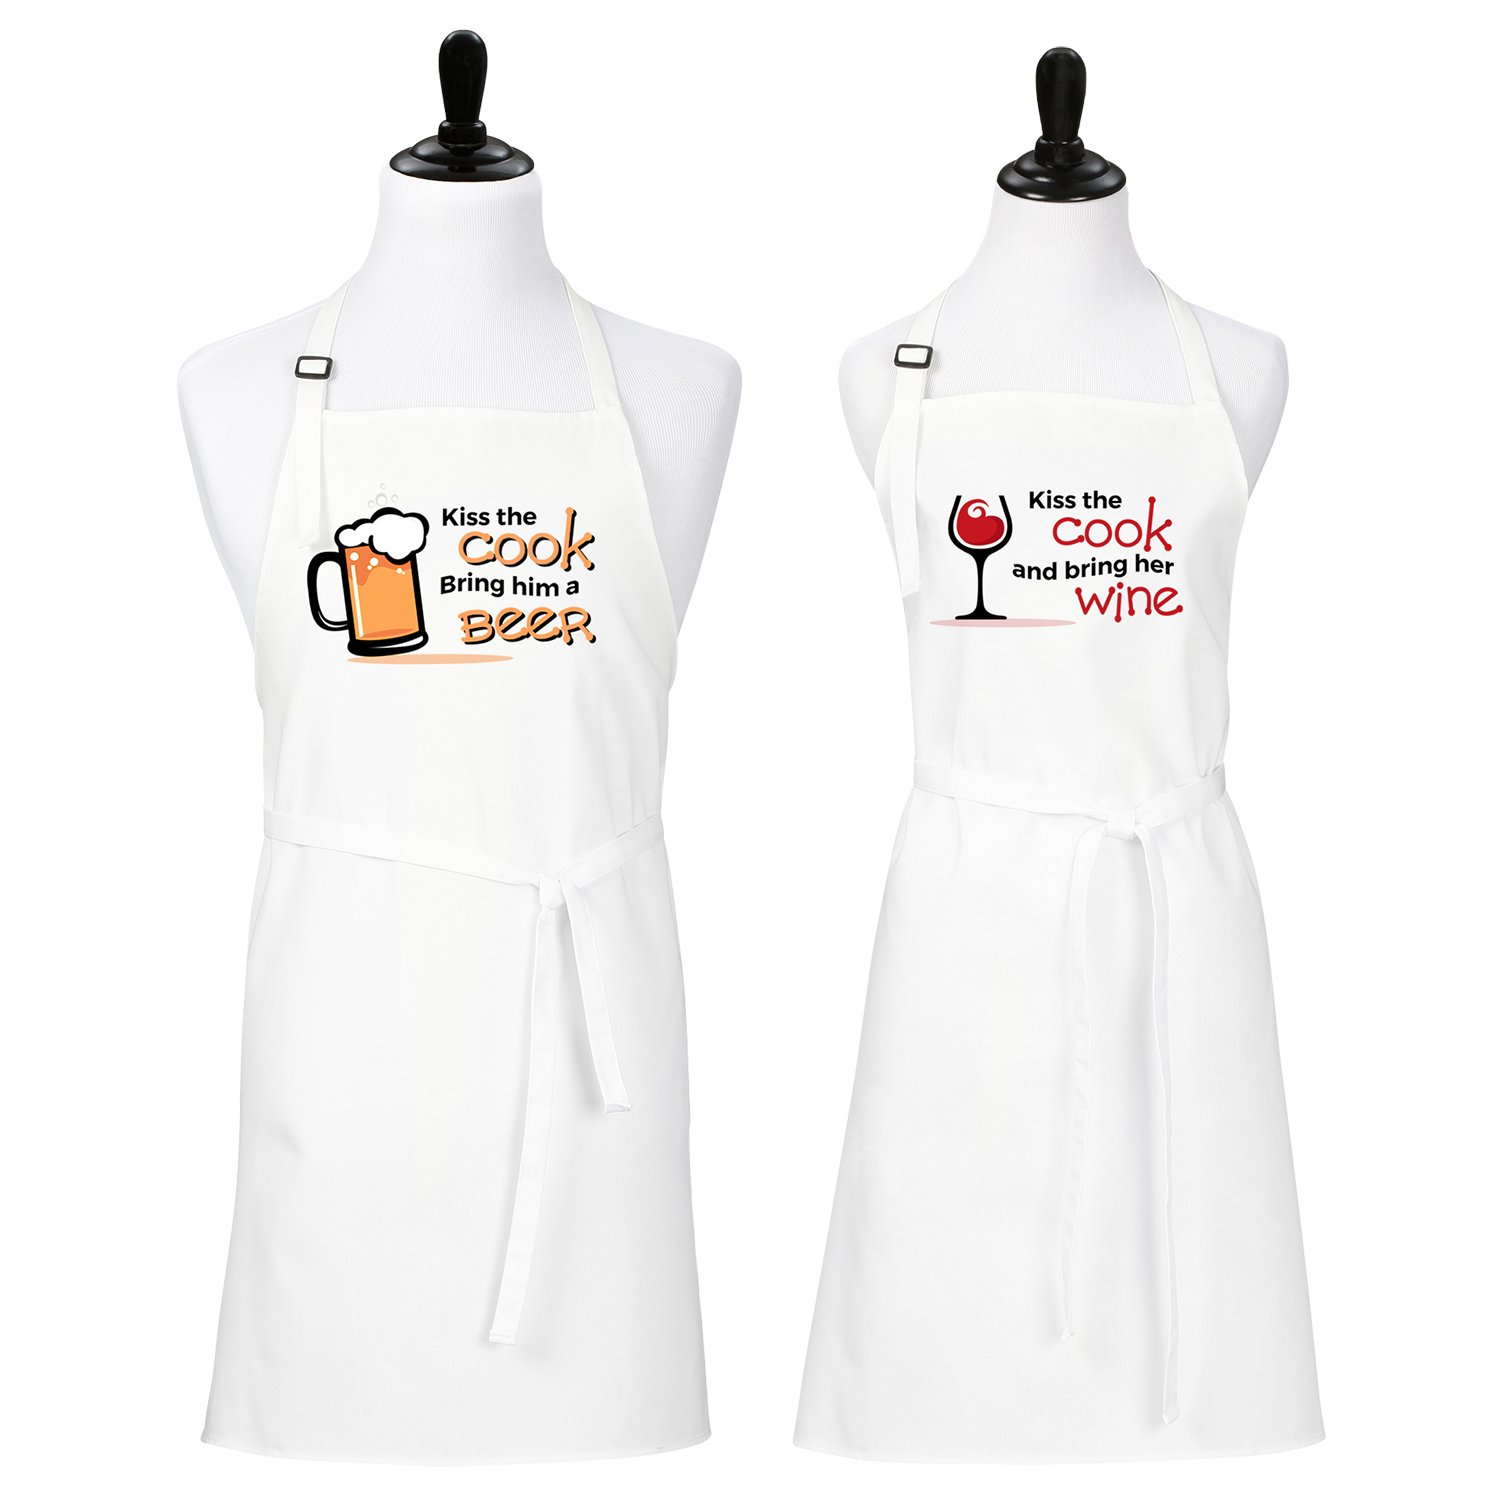 Kiss The Cook Kitchen Decor Amazoncom Kiss The Cook Bring Him A Beer Kiss The Cook And Bring